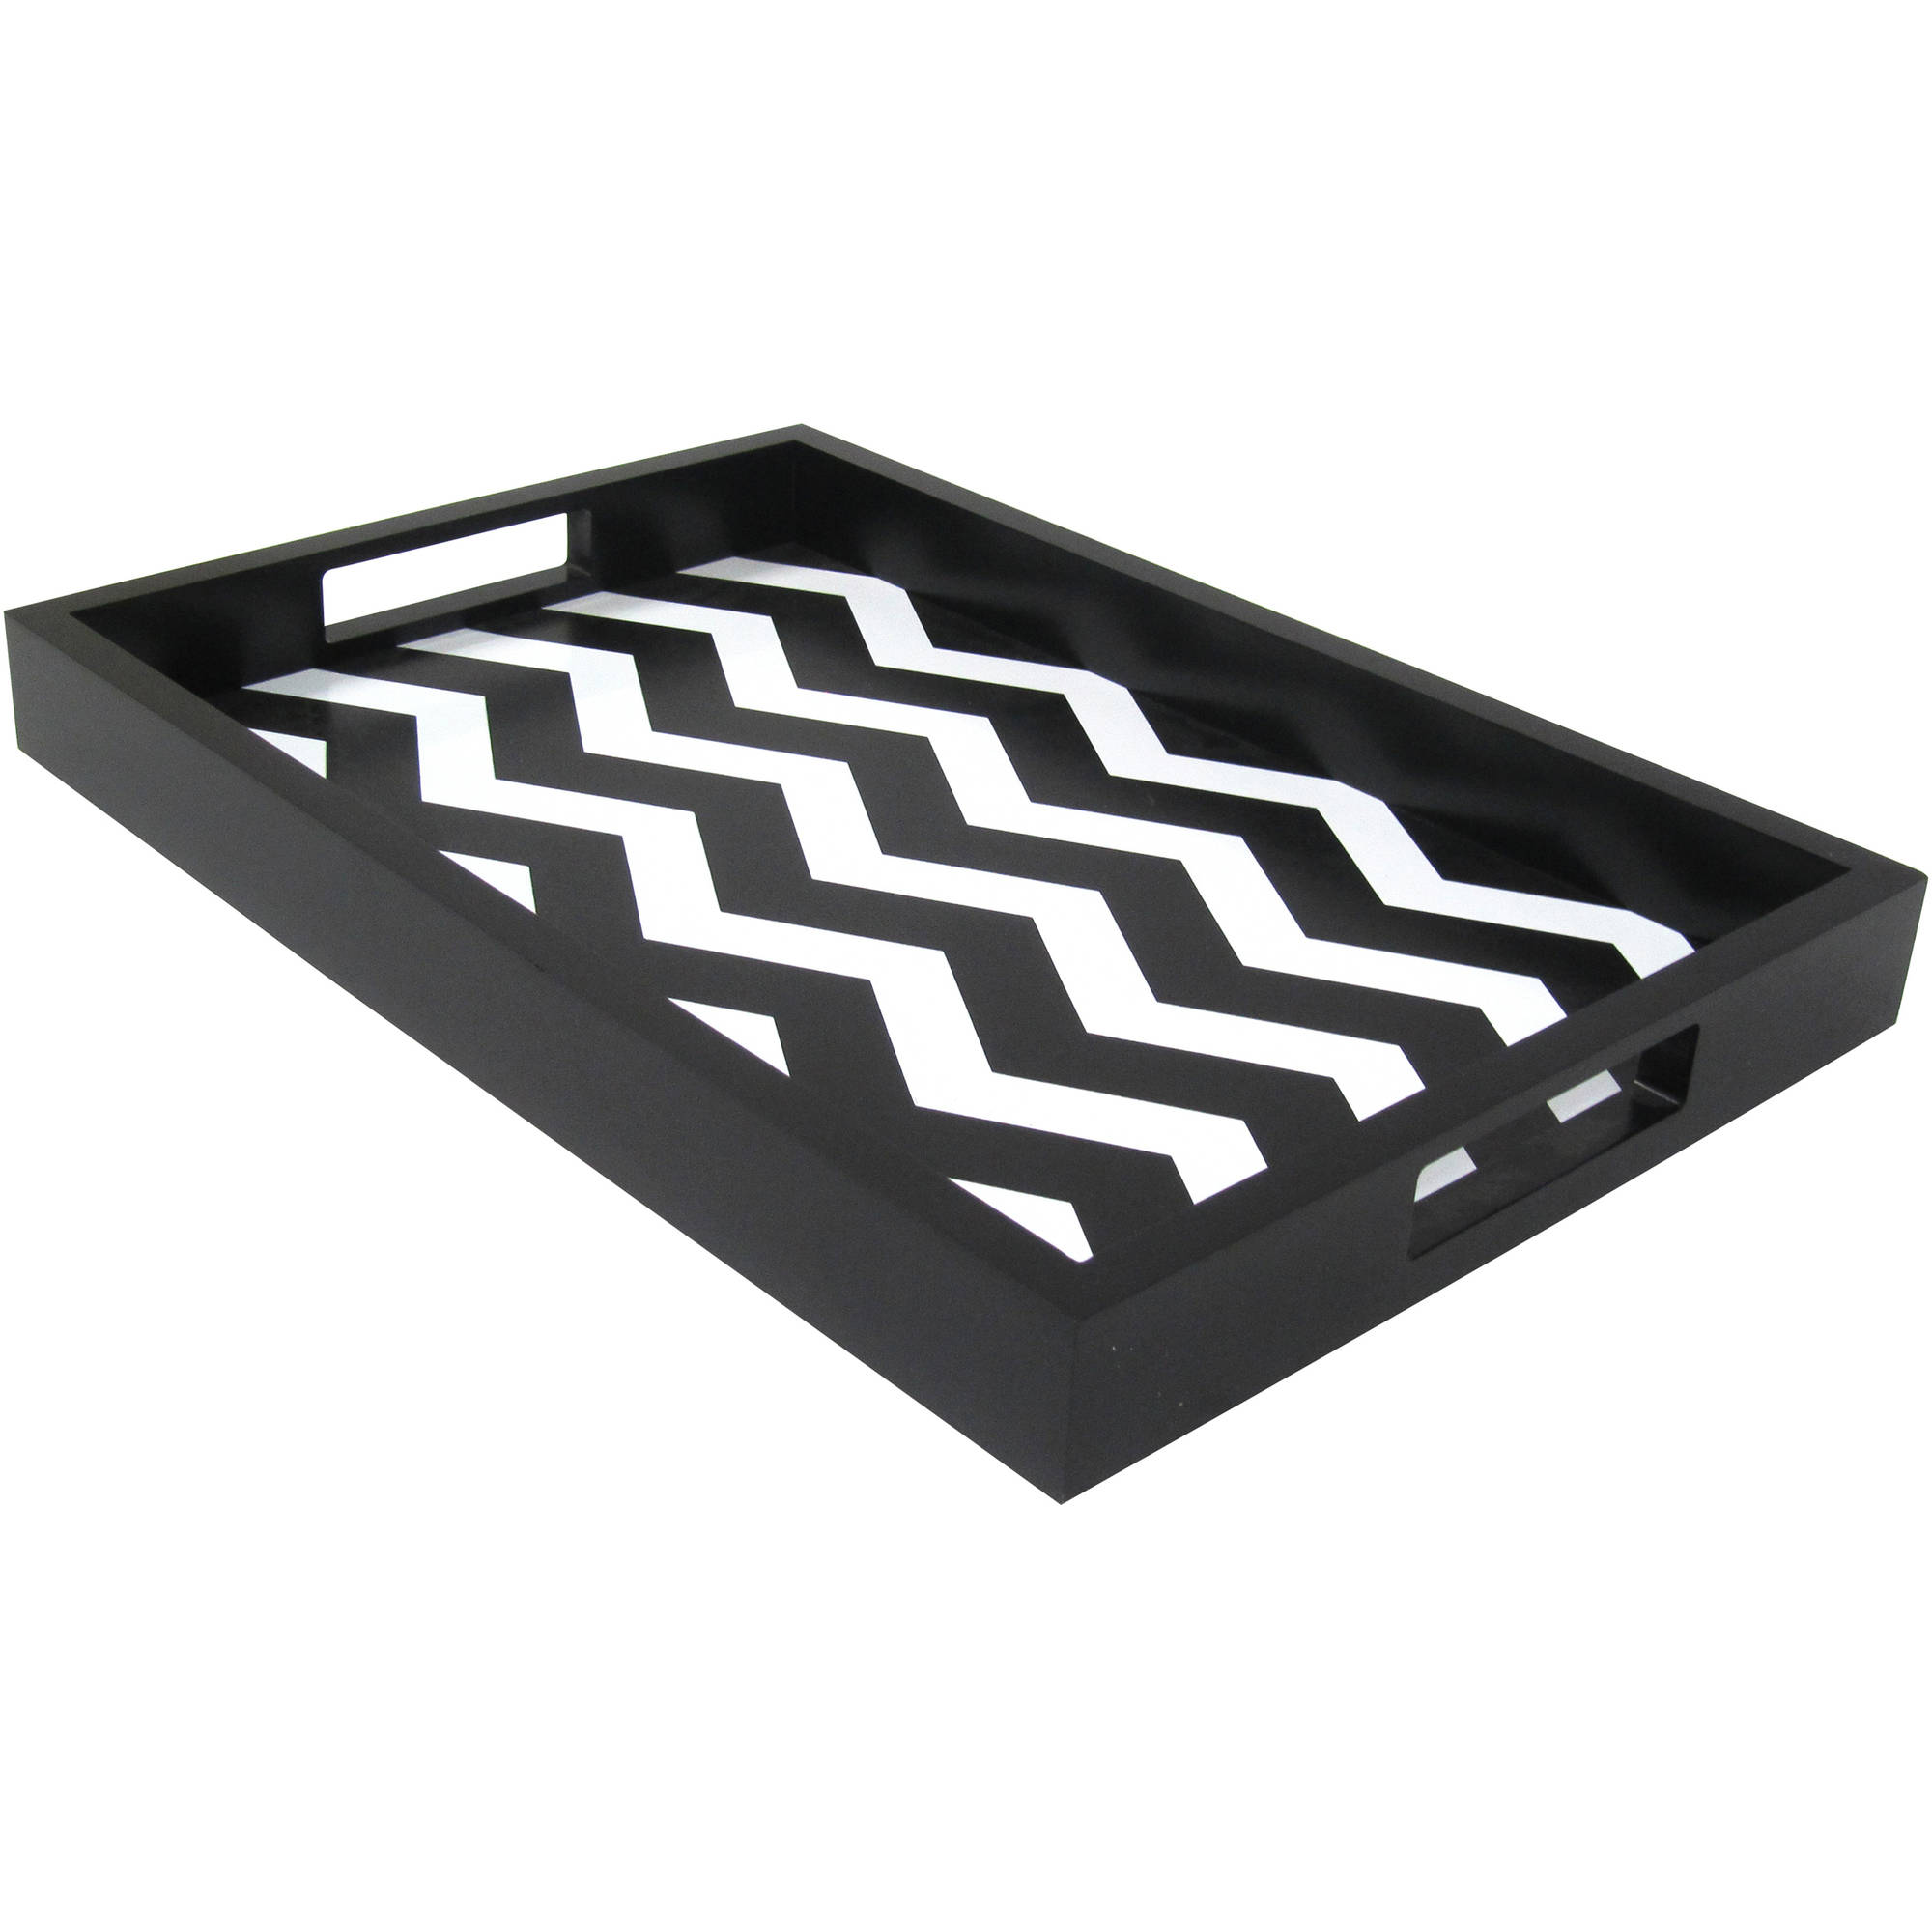 "Decorative 10"" x 15"" Black and White Chevron Serving Tray"